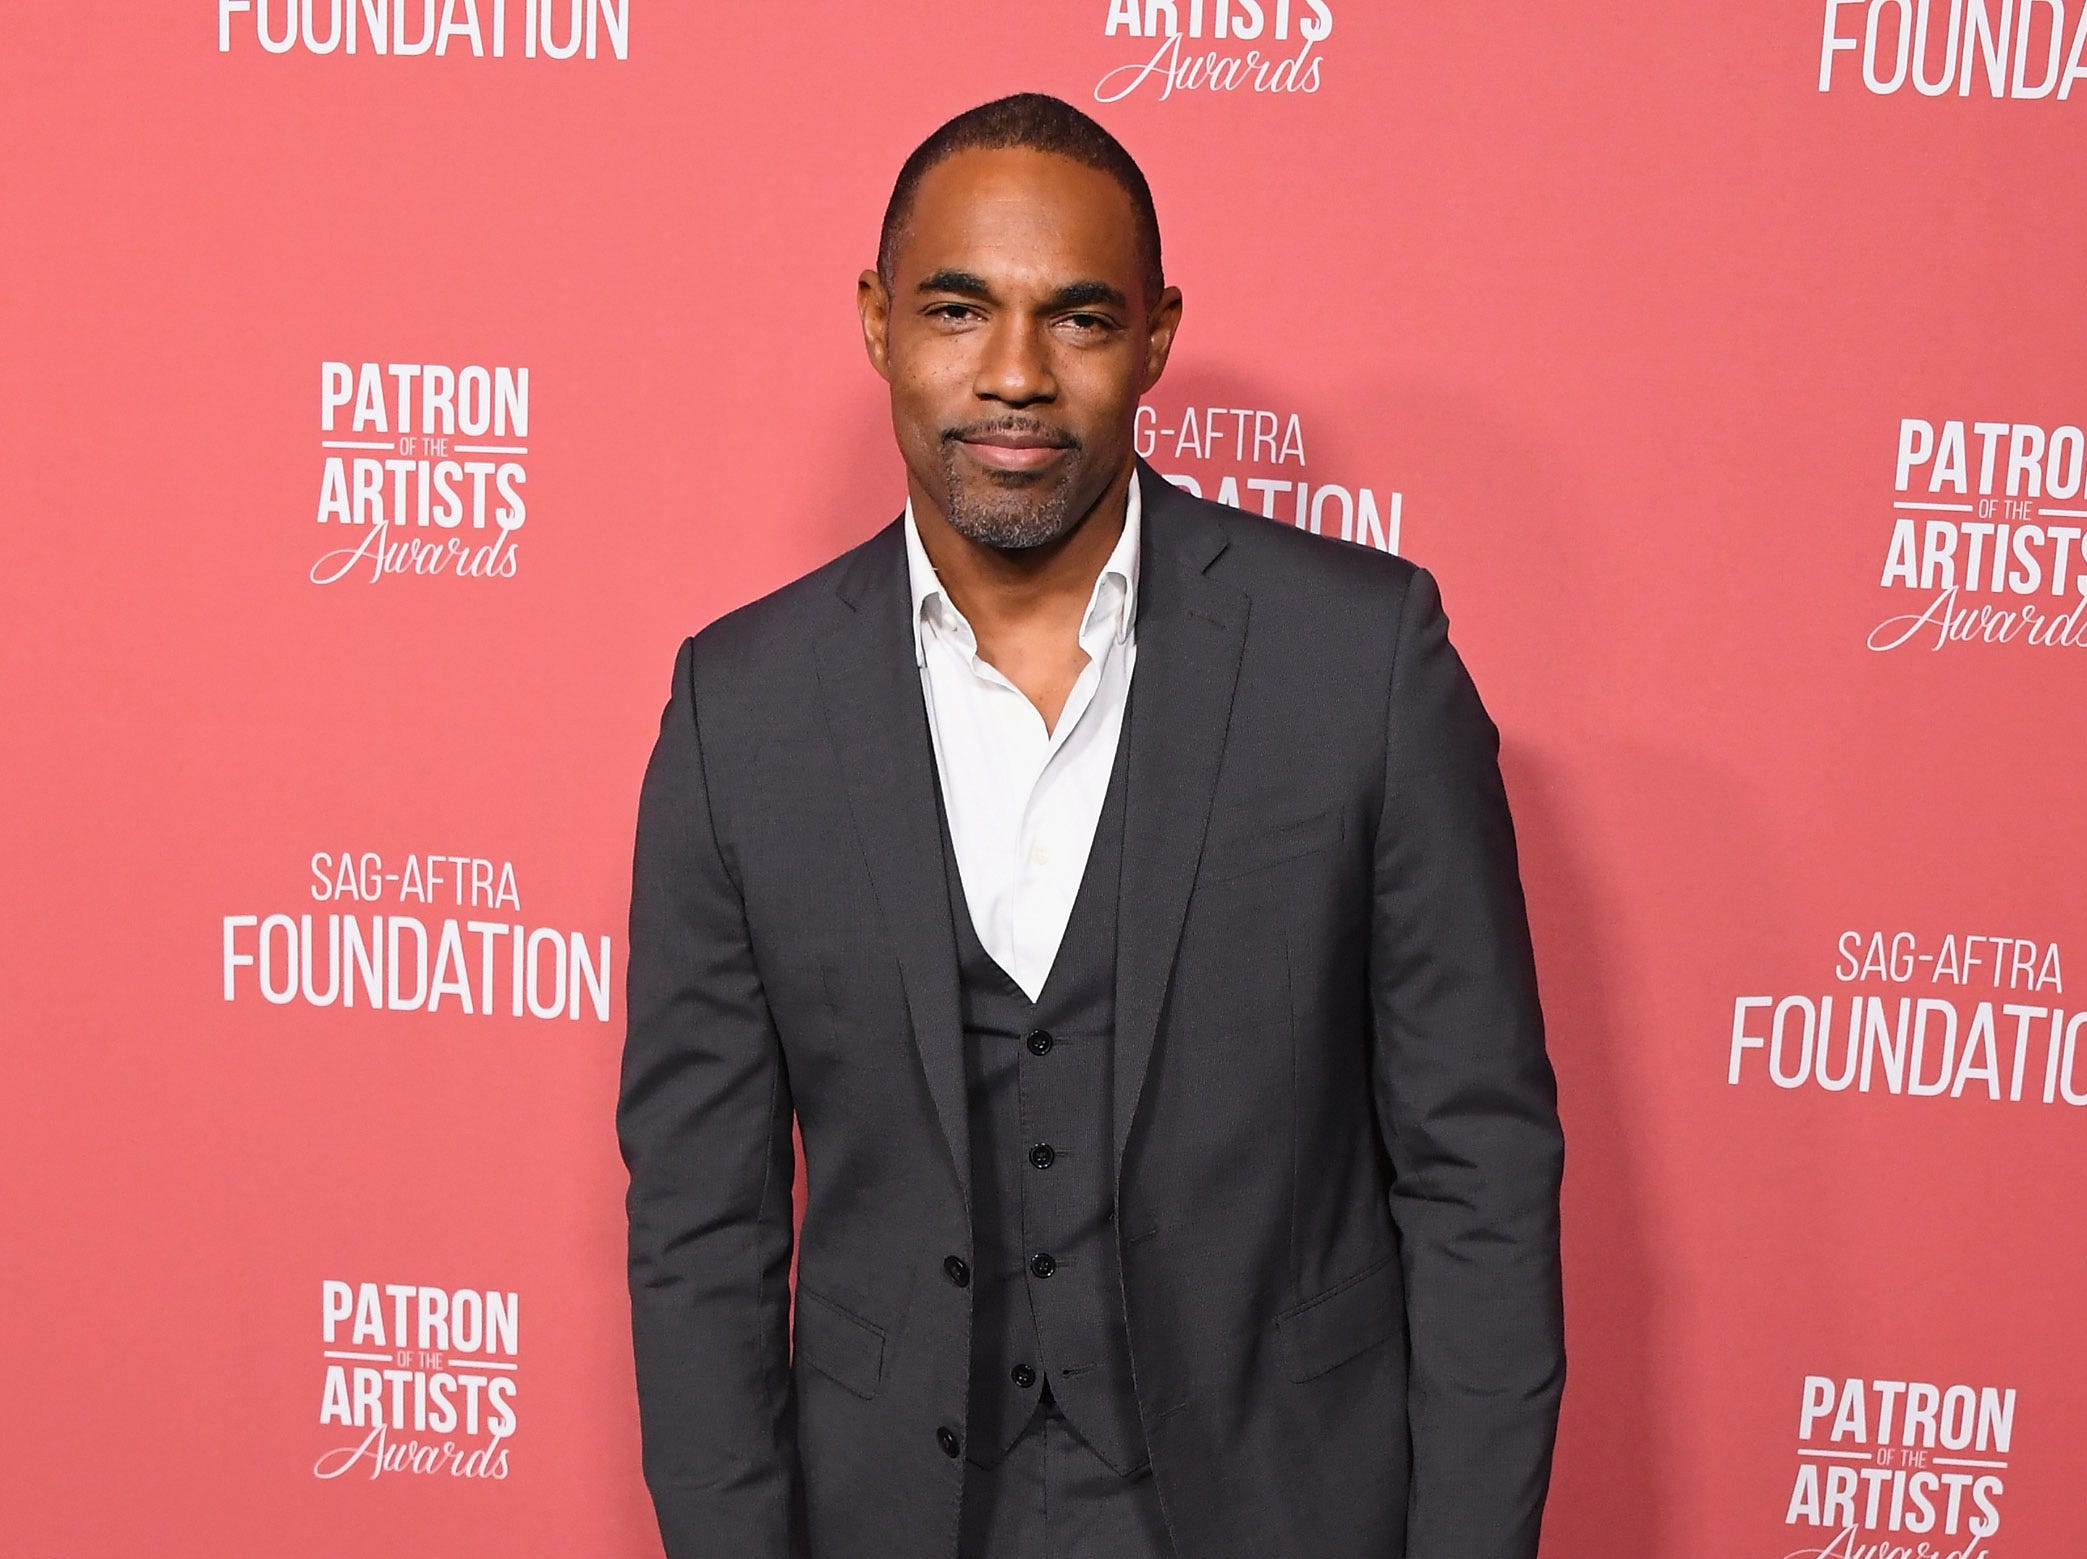 BEVERLY HILLS, CA - NOVEMBER 08:  Jason Winston George attends SAG-AFTRA Foundation's 3rd Annual Patron Of The Artists Awards at Wallis Annenberg Center for the Performing Arts on November 8, 2018 in Beverly Hills, California.  (Photo by Jon Kopaloff/FilmMagic) ORG XMIT: 775233471 ORIG FILE ID: 1059466906